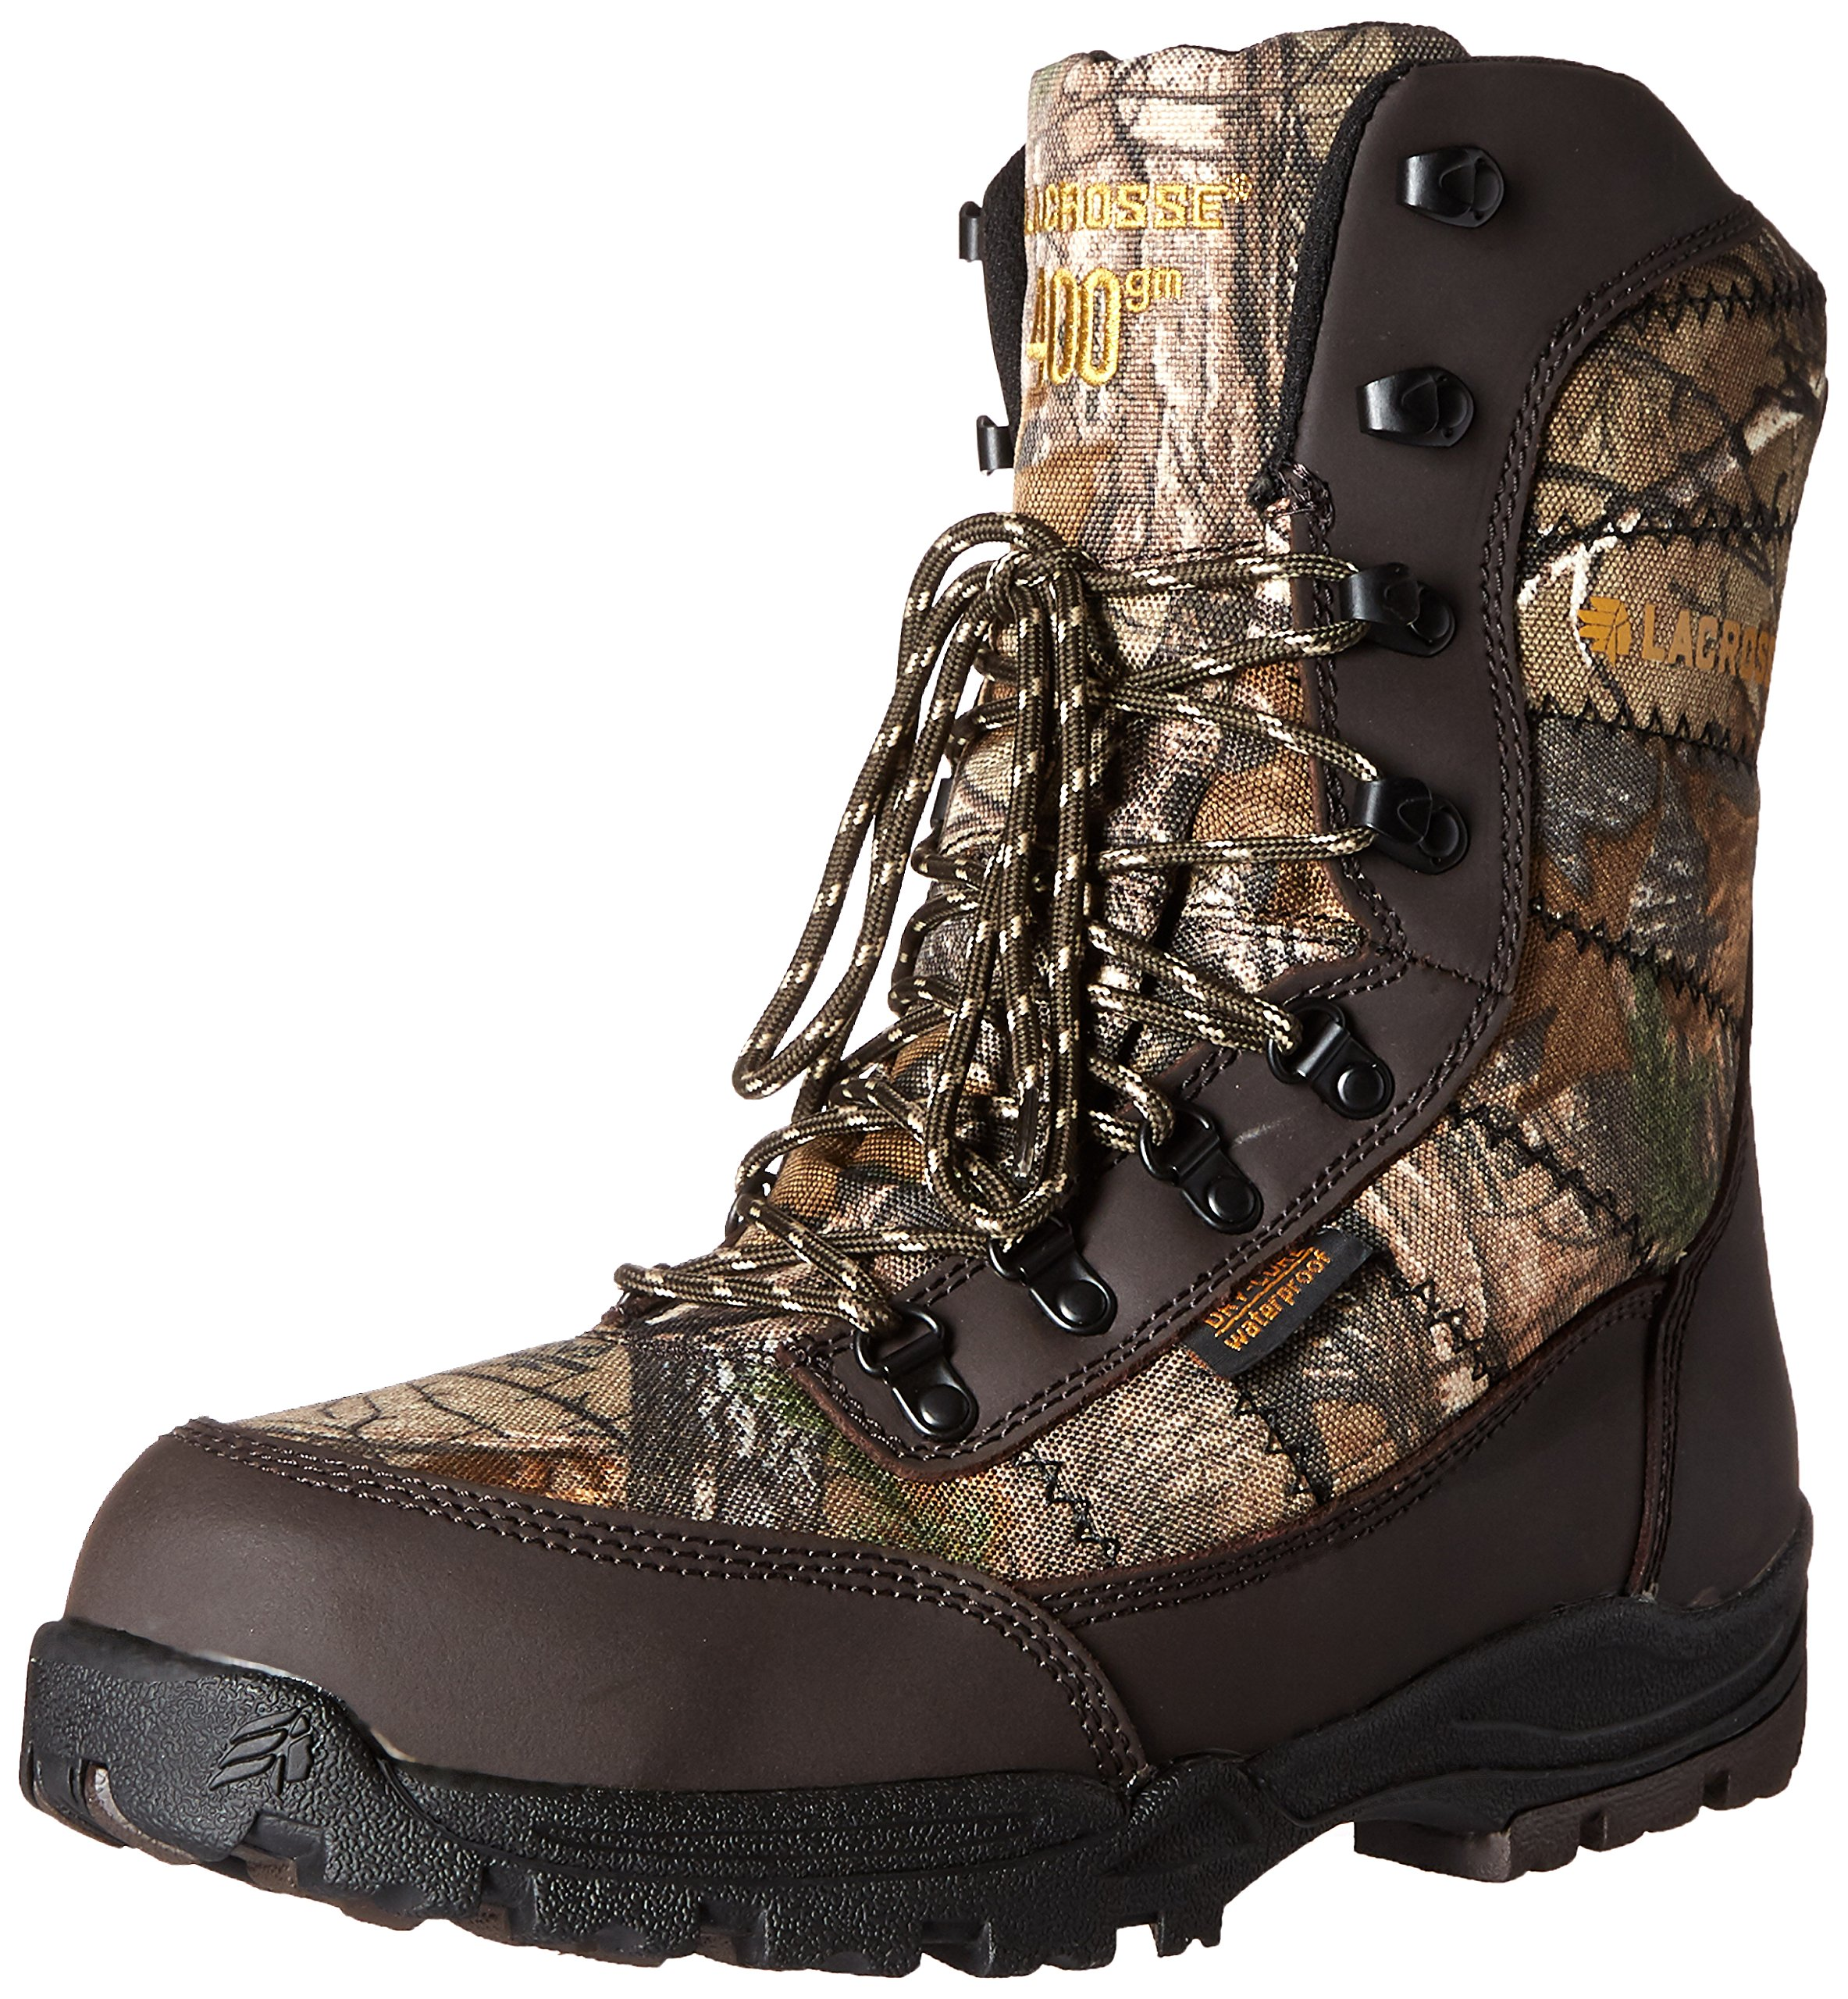 Lacrosse Men's Silencer Realtree Xtra 400G Hunting Boot, Real Tree, 9.5 M US